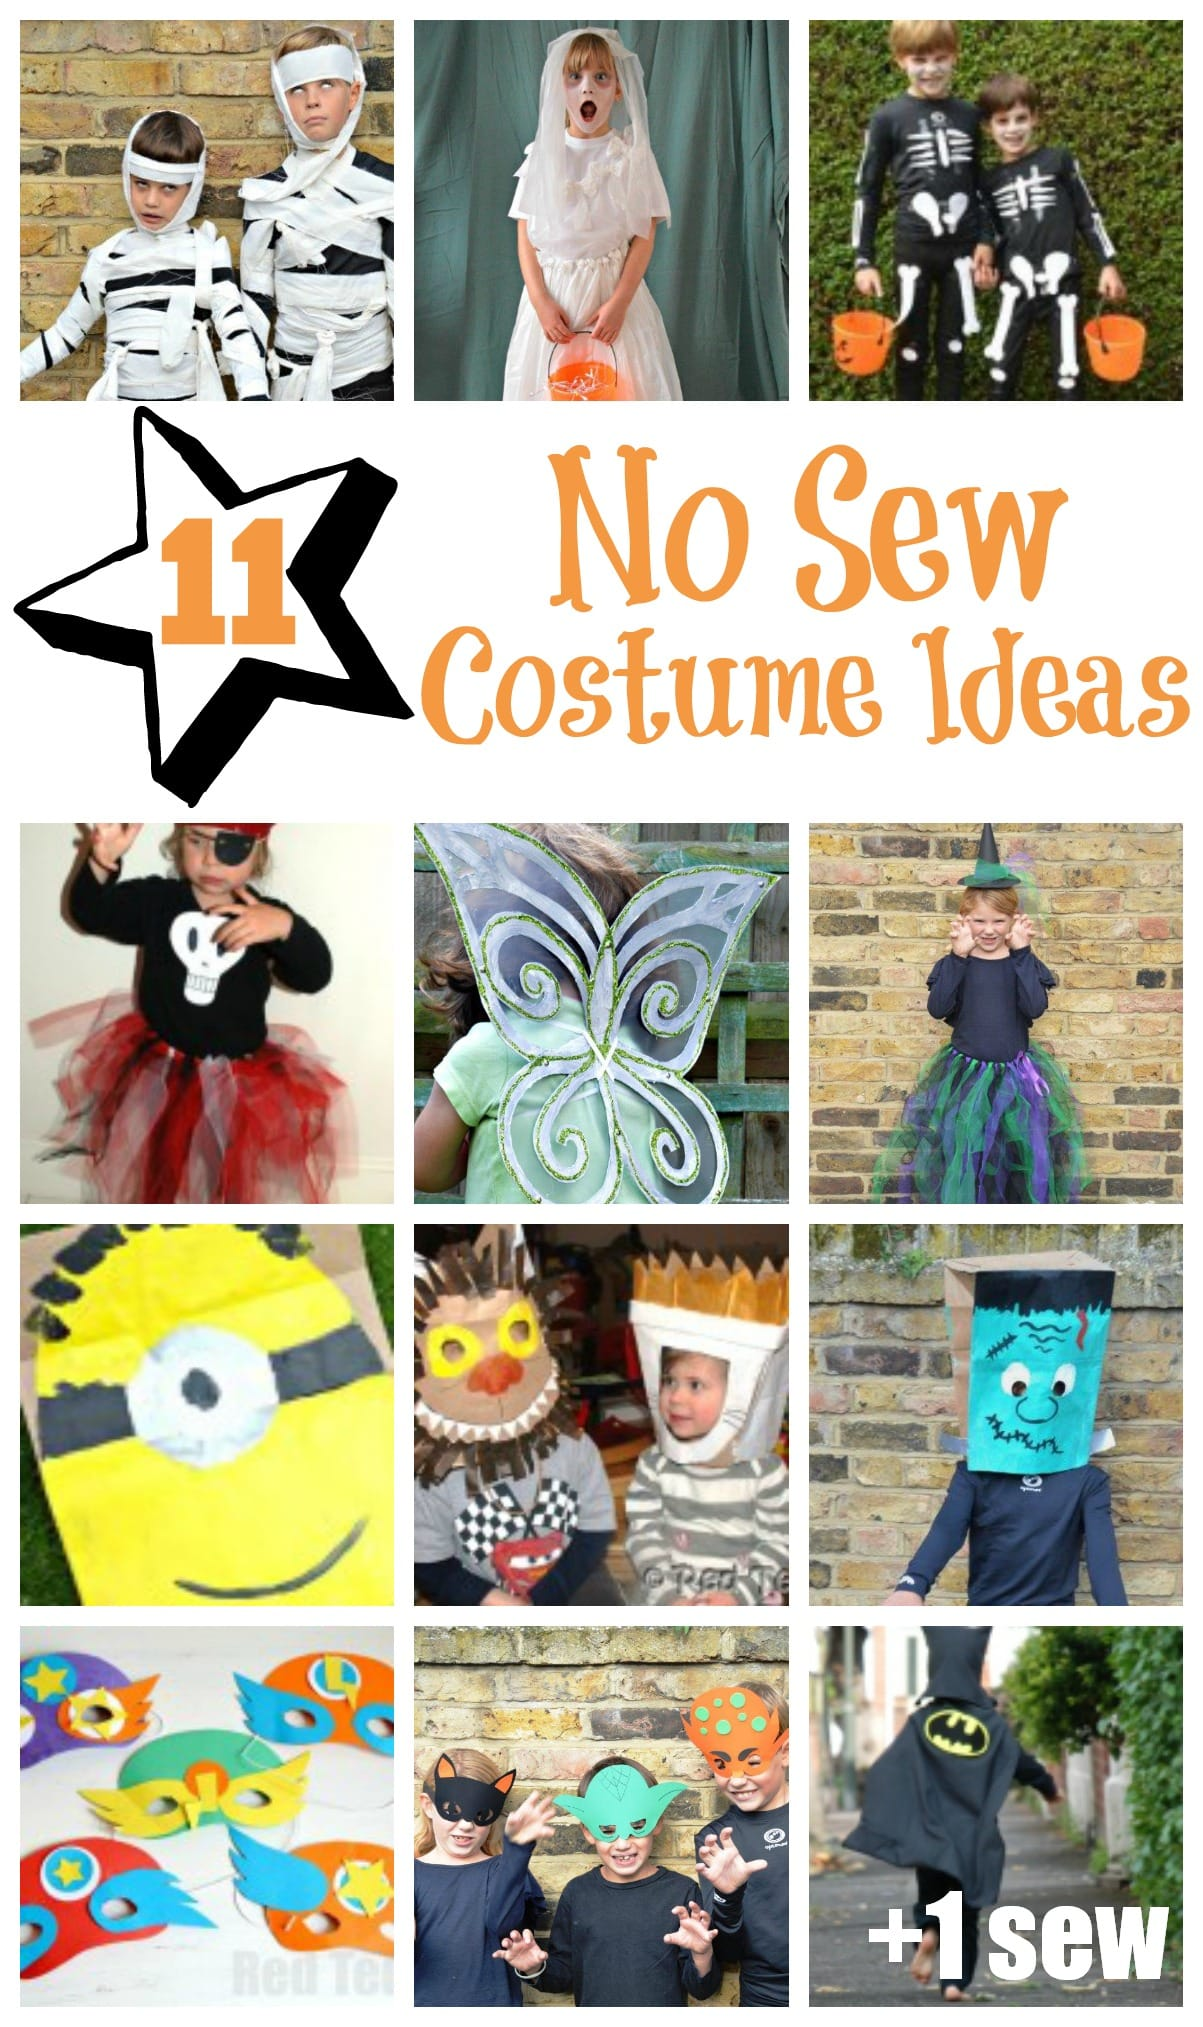 10+1 No Sew Costume Craft Ideas